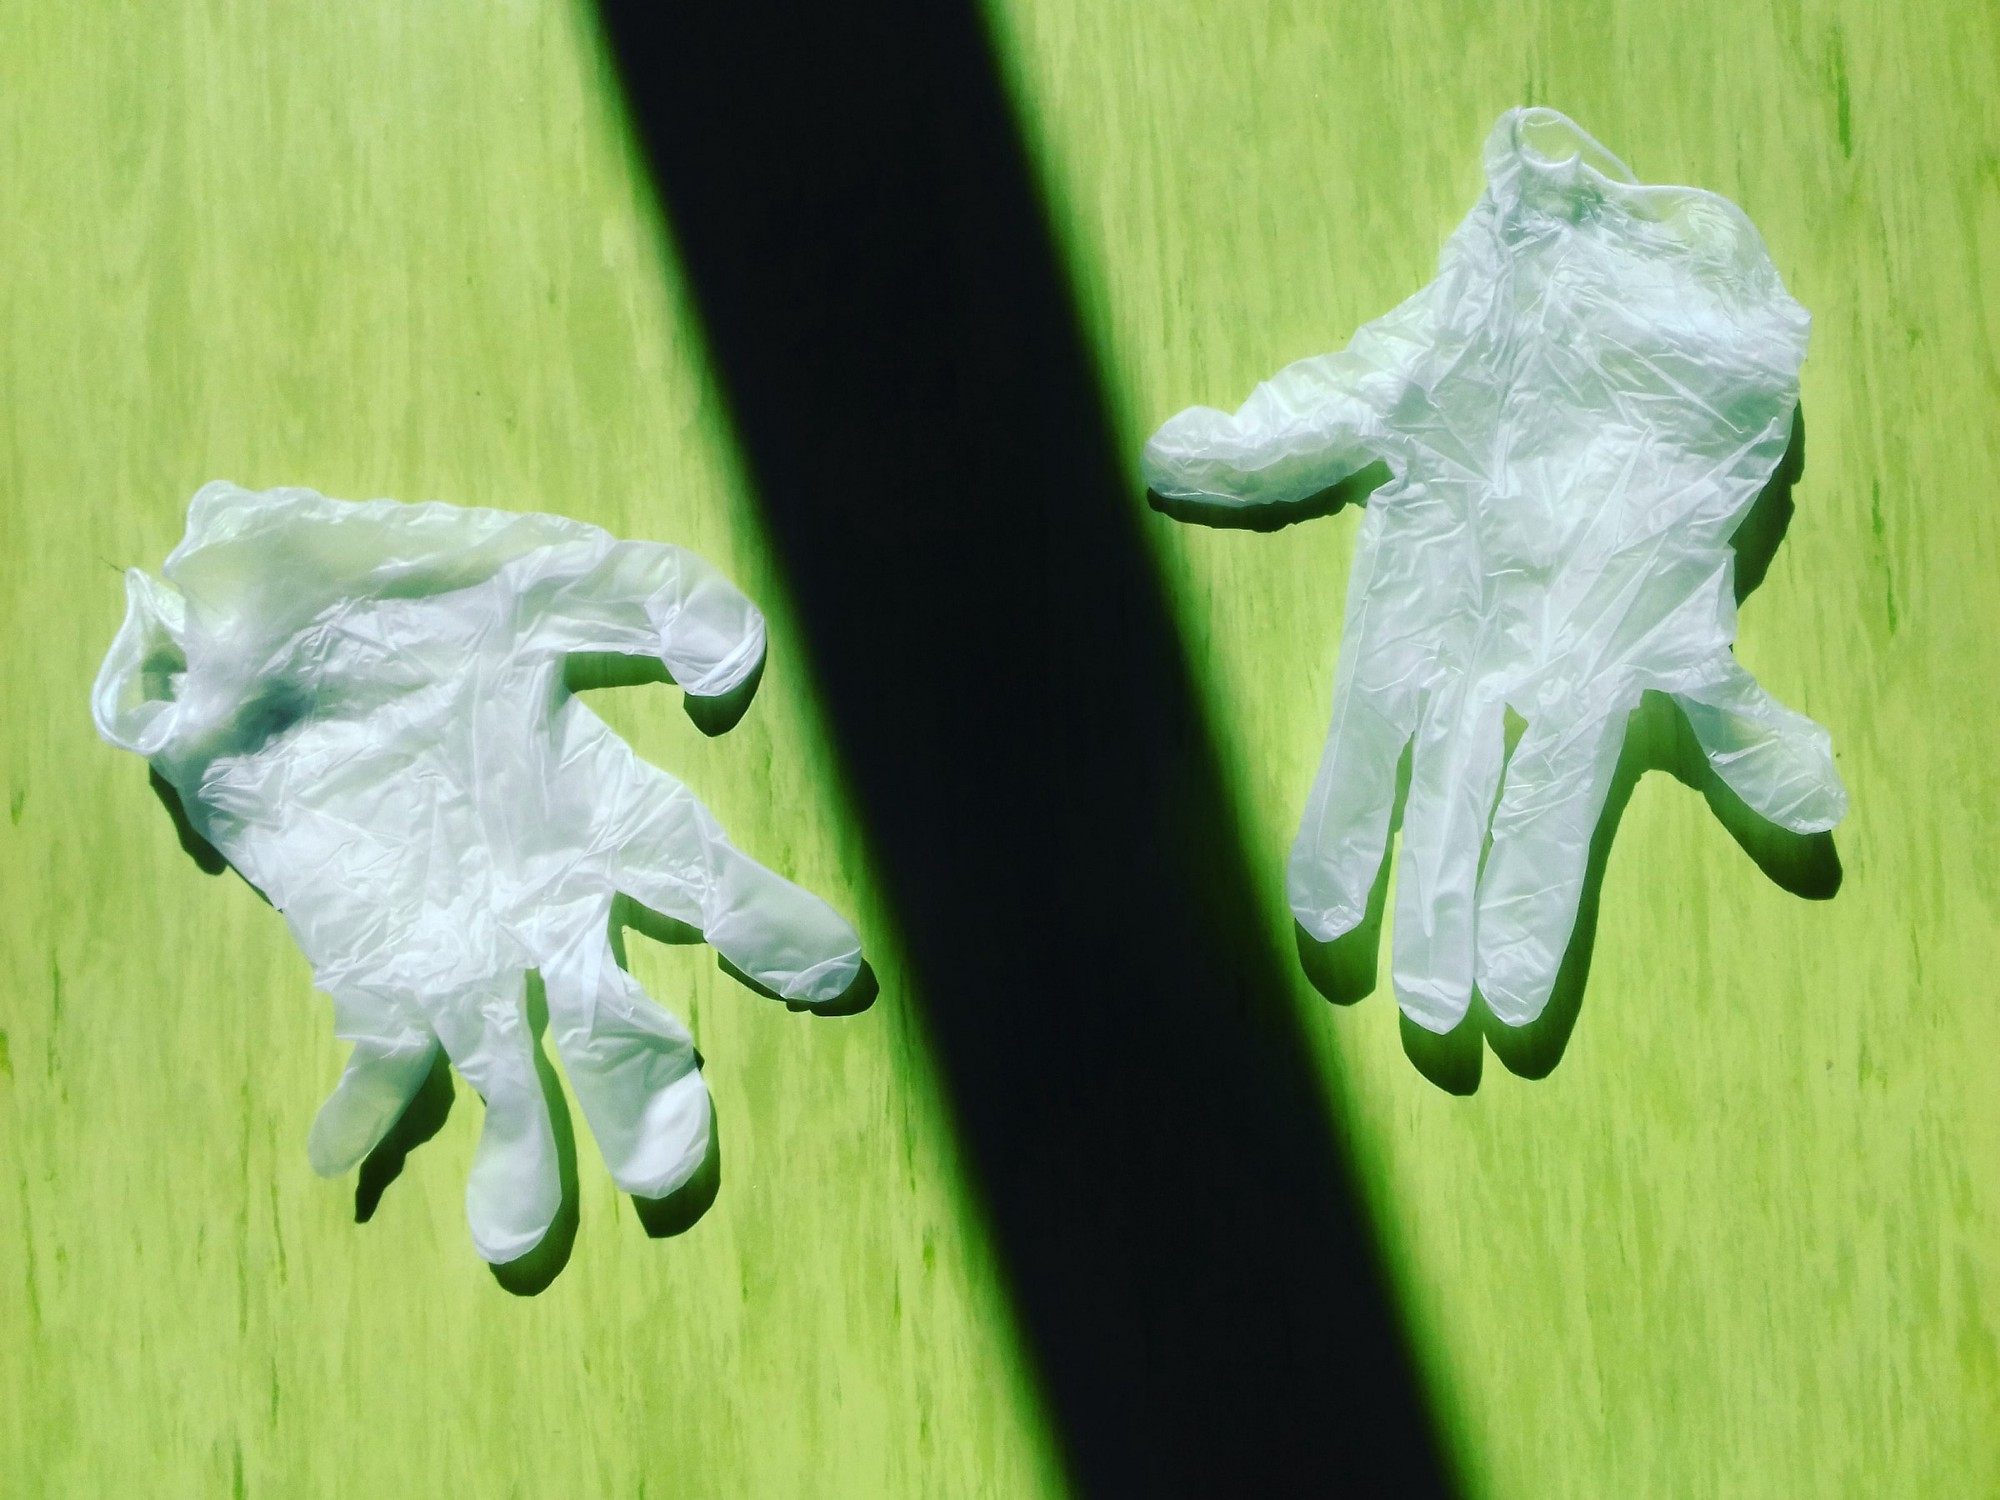 2 used surgical gloves on a green surface with a rectangular shadow falling between them.